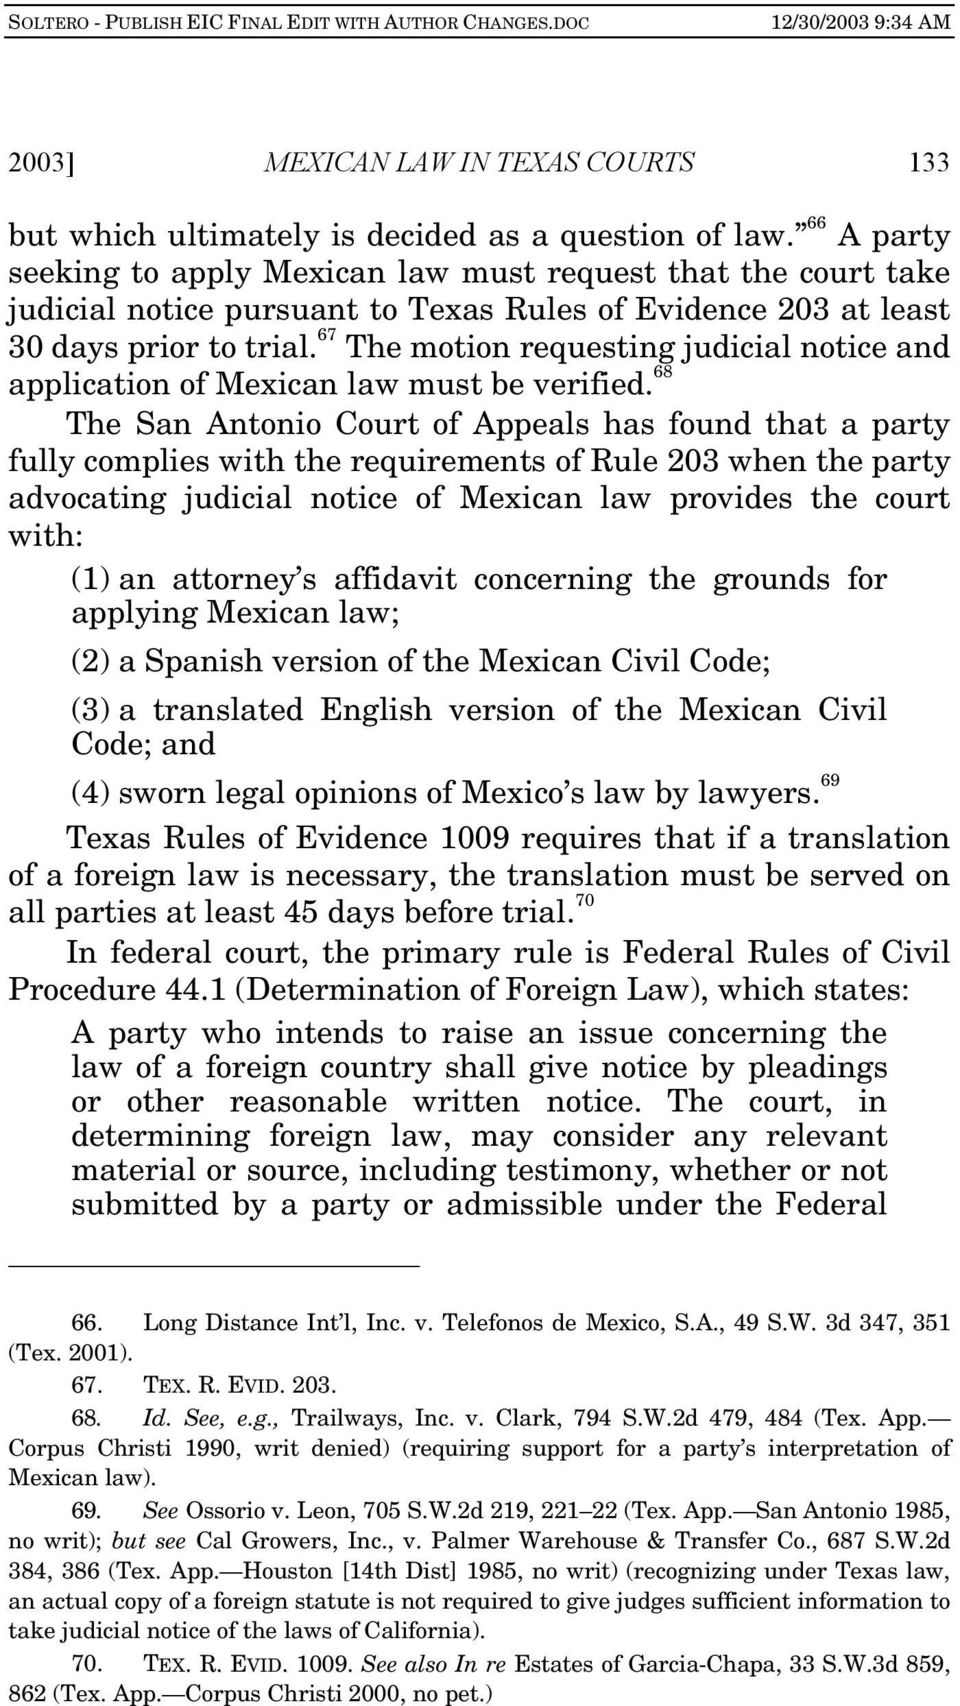 67 The motion requesting judicial notice and application of Mexican law must be verified.